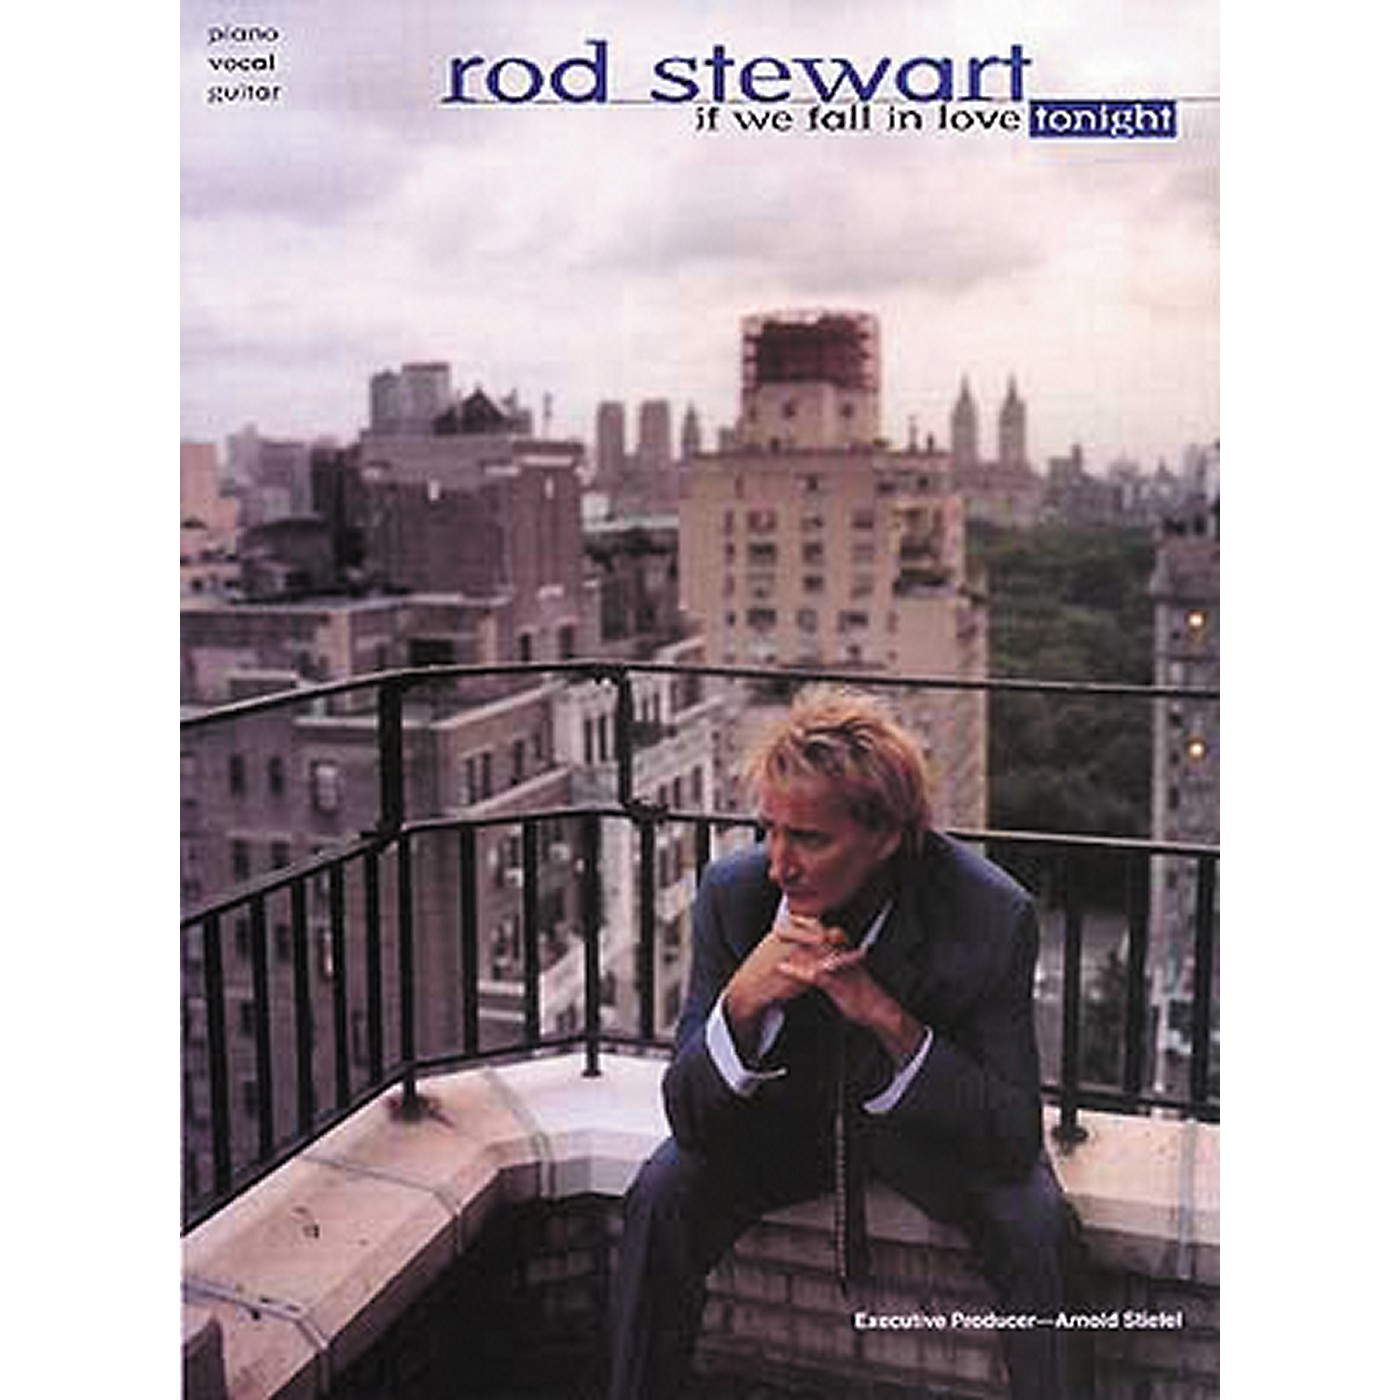 Hal Leonard Rod Stewart If We Fall In Love Tonight Piano, Vocal, Guitar Songbook thumbnail